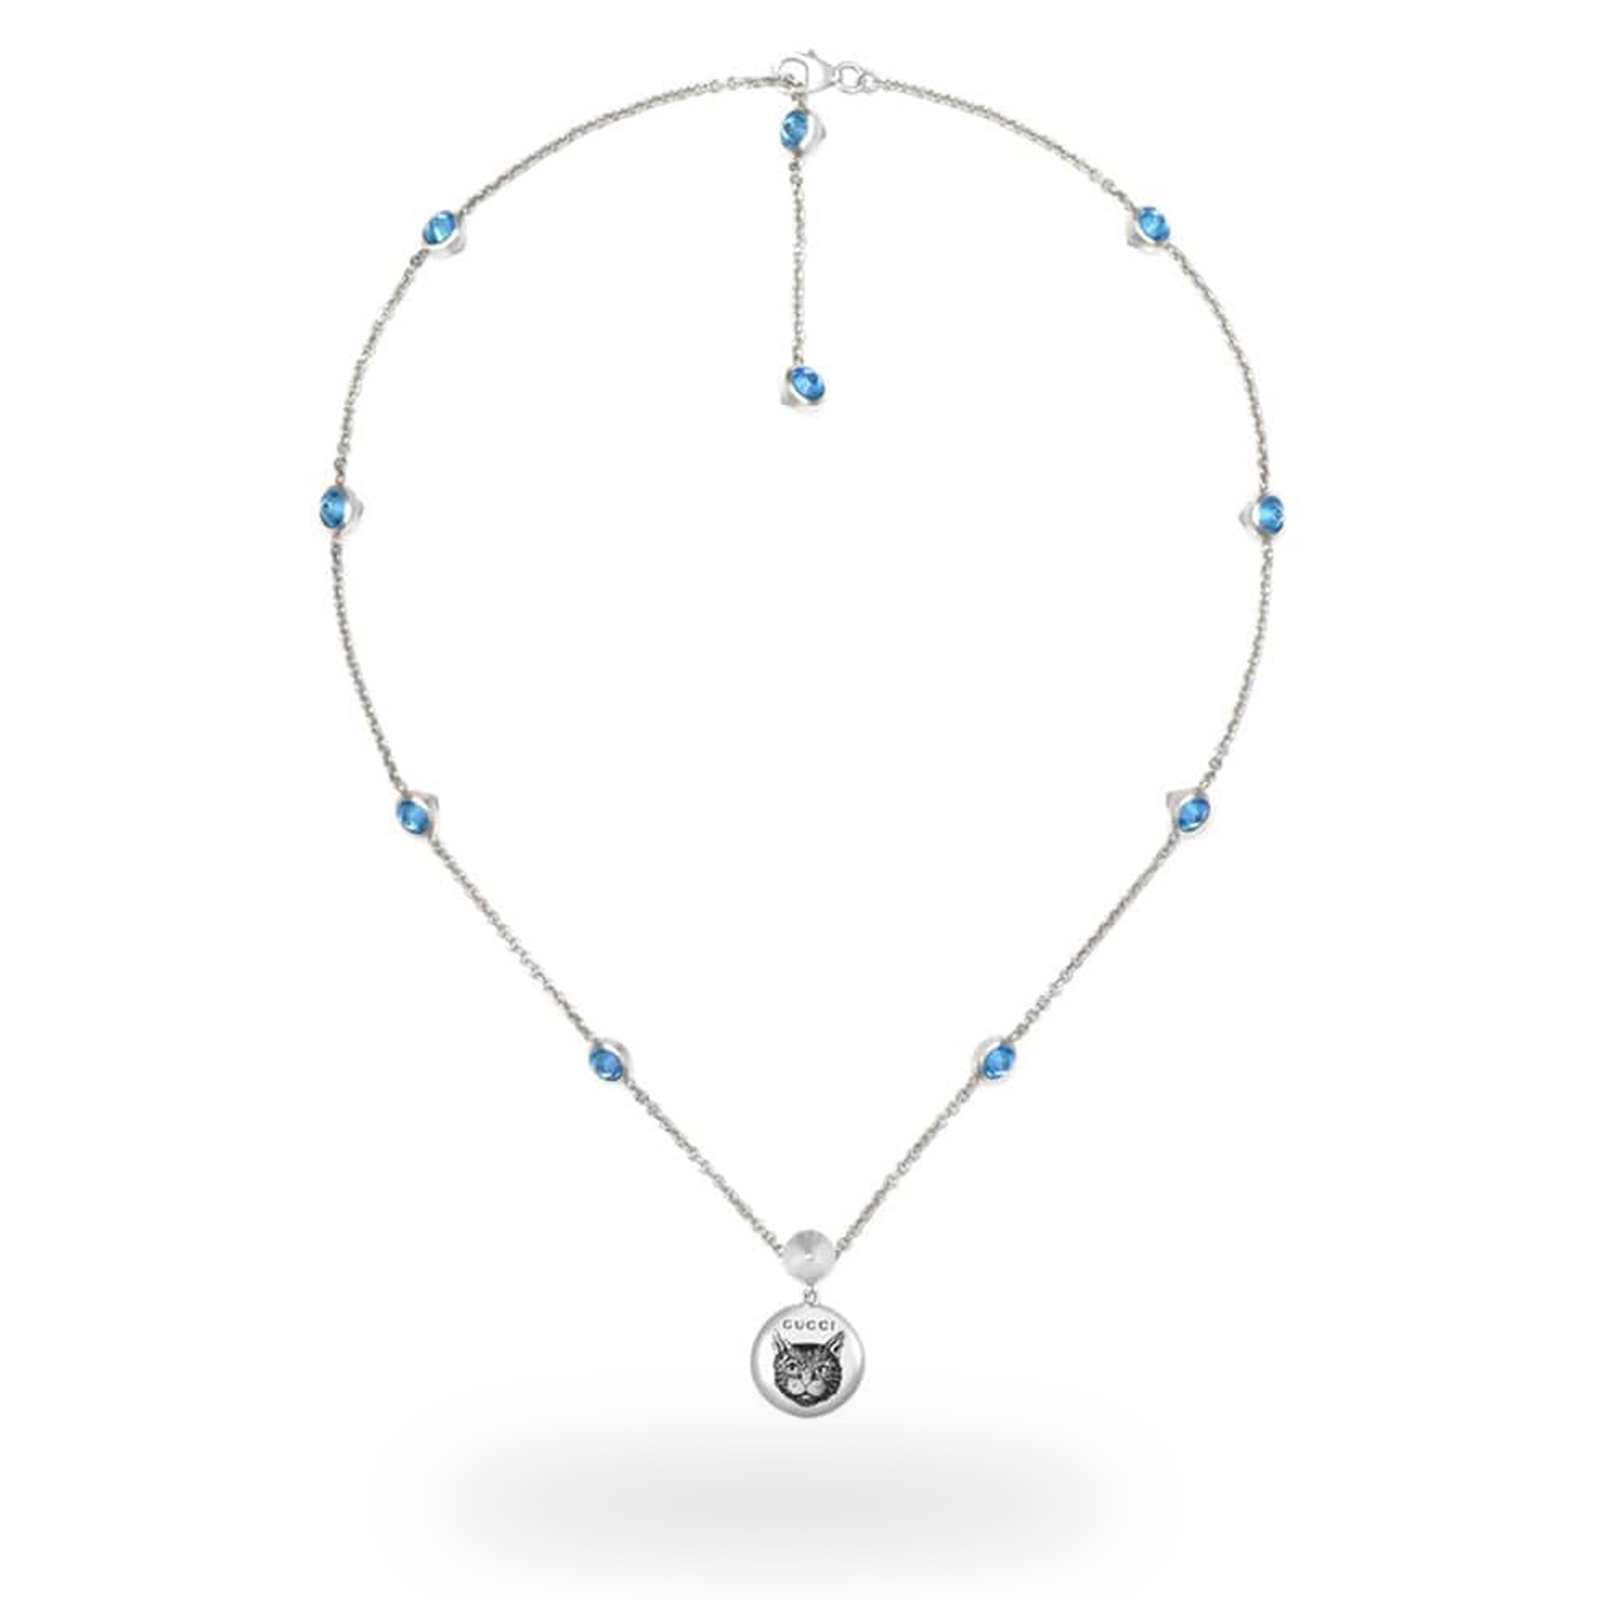 Gucci Blind for Love Blue Necklace thumbnail